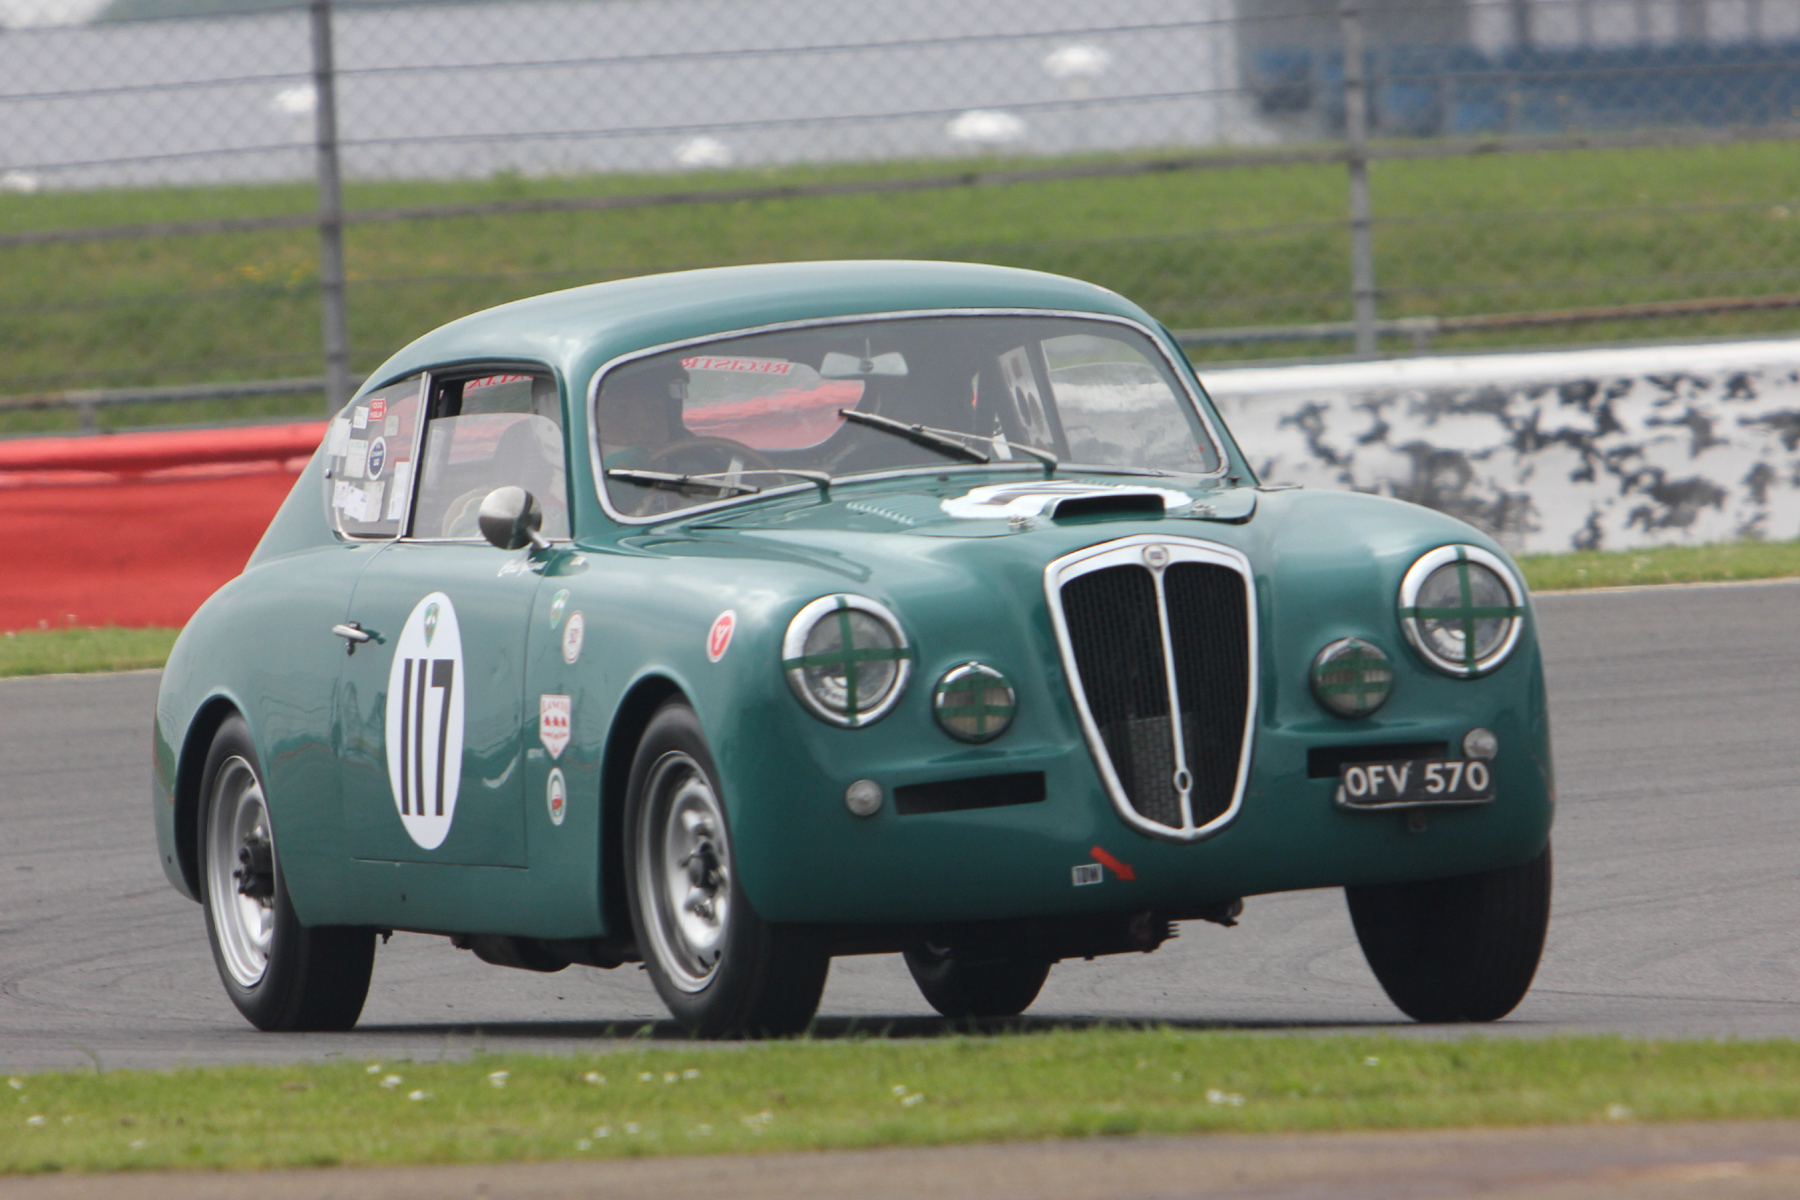 it was wonderful to see a Lancia Aurelia B20 GT out with us again. Chris Gawne had not raced with us for a couple of seasons but he professed a desire to try to do more races, so now we need Jason & Louise Kennedy to bring theirs out to make it a brace!   Photo - Pat Arculus, Tripos Media